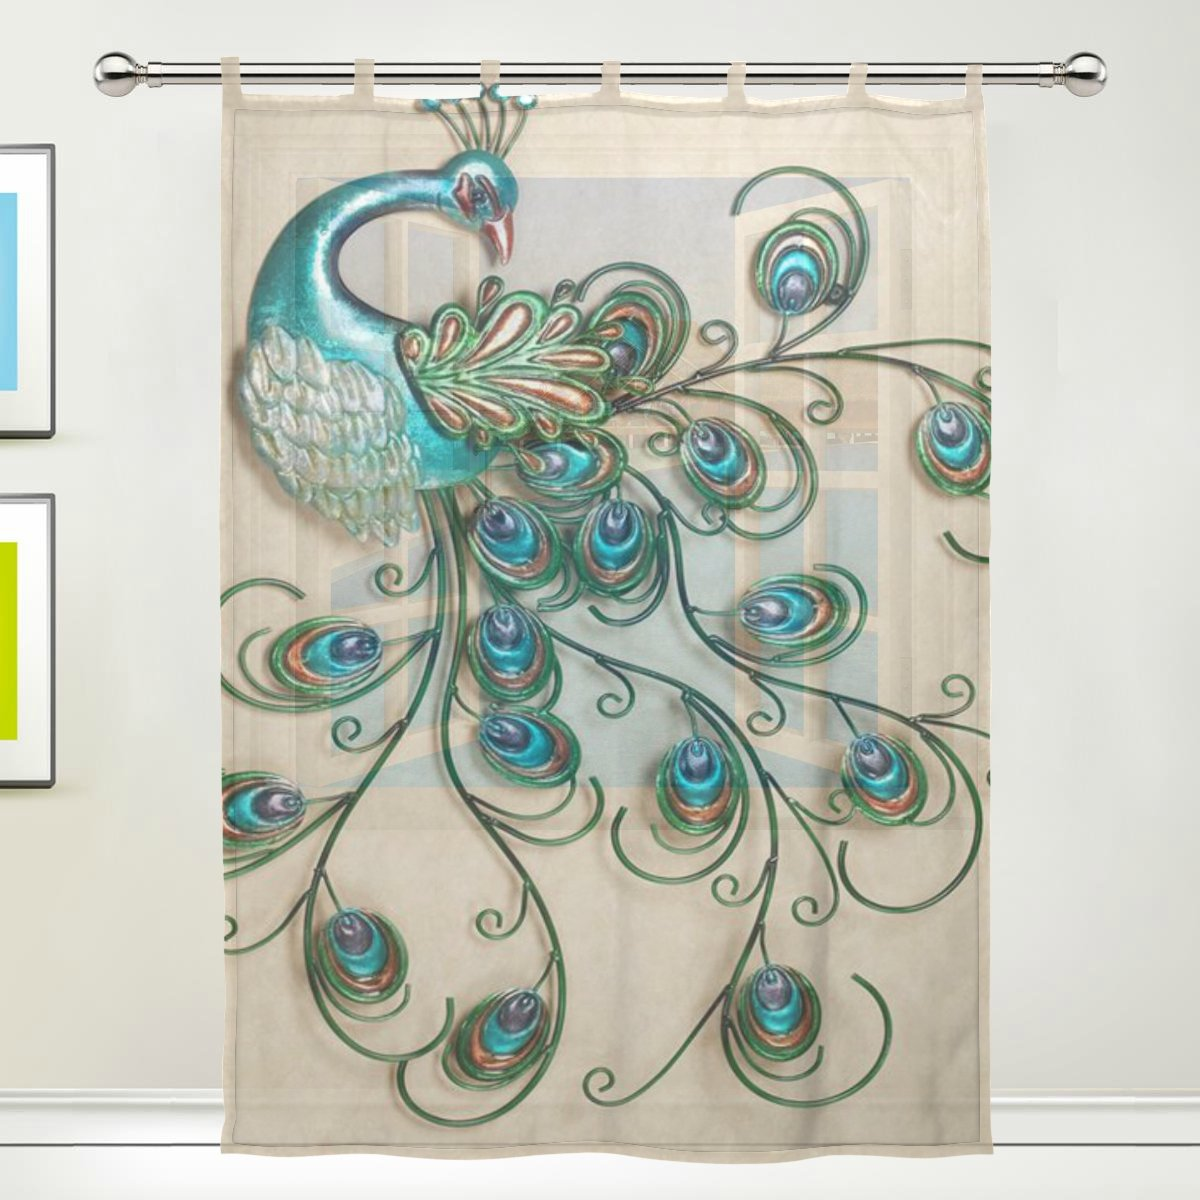 Single Panel g374303p102c116s148 JSTEL Peacock Pattern Floral Print Tulle Voile Door Window Room Sheer Curtain Drape 1 Panel Scarf Valances Wide Width Gauze Curtain for Bedroom 55 x 78 Inch